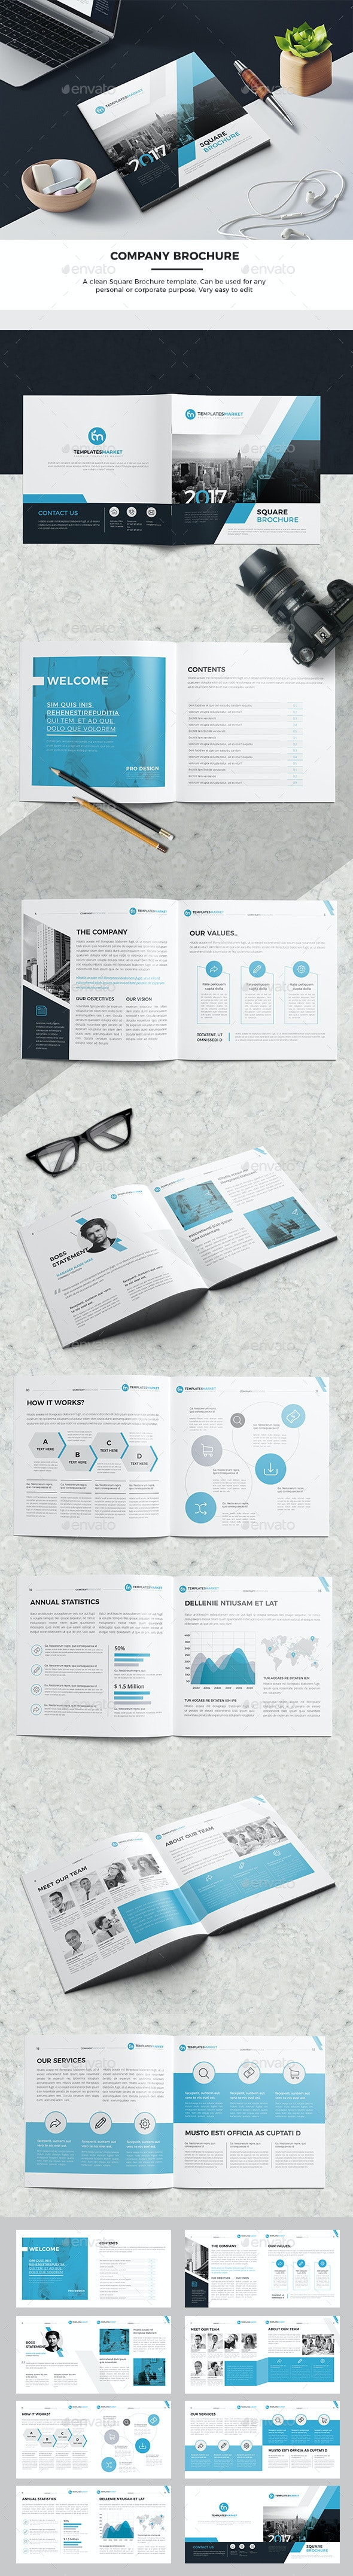 TM Square Company Brochure 16 Pages - Corporate Brochures